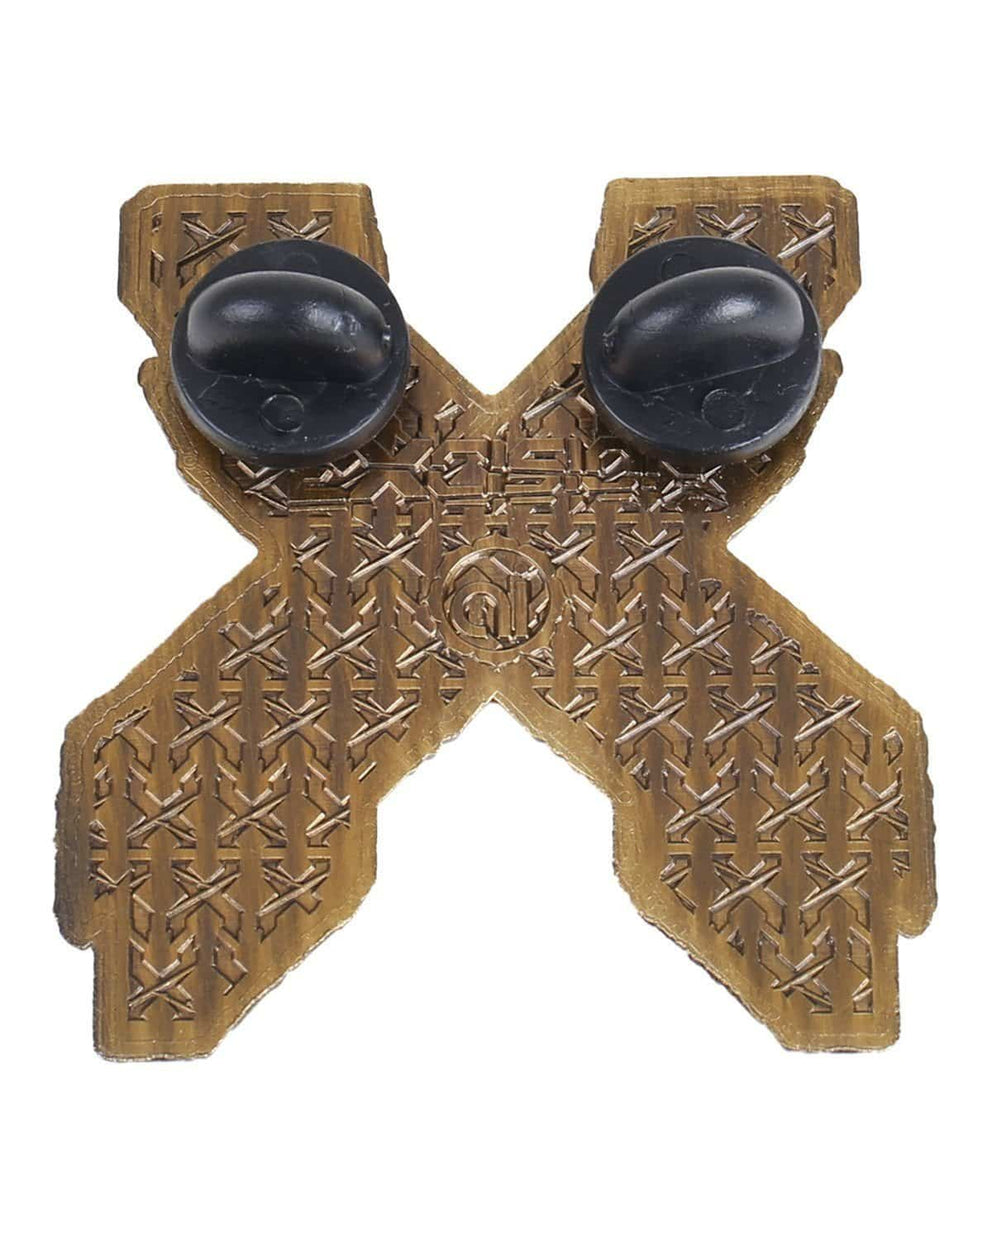 Excision 'Paradox X' Pin - Antique Gold